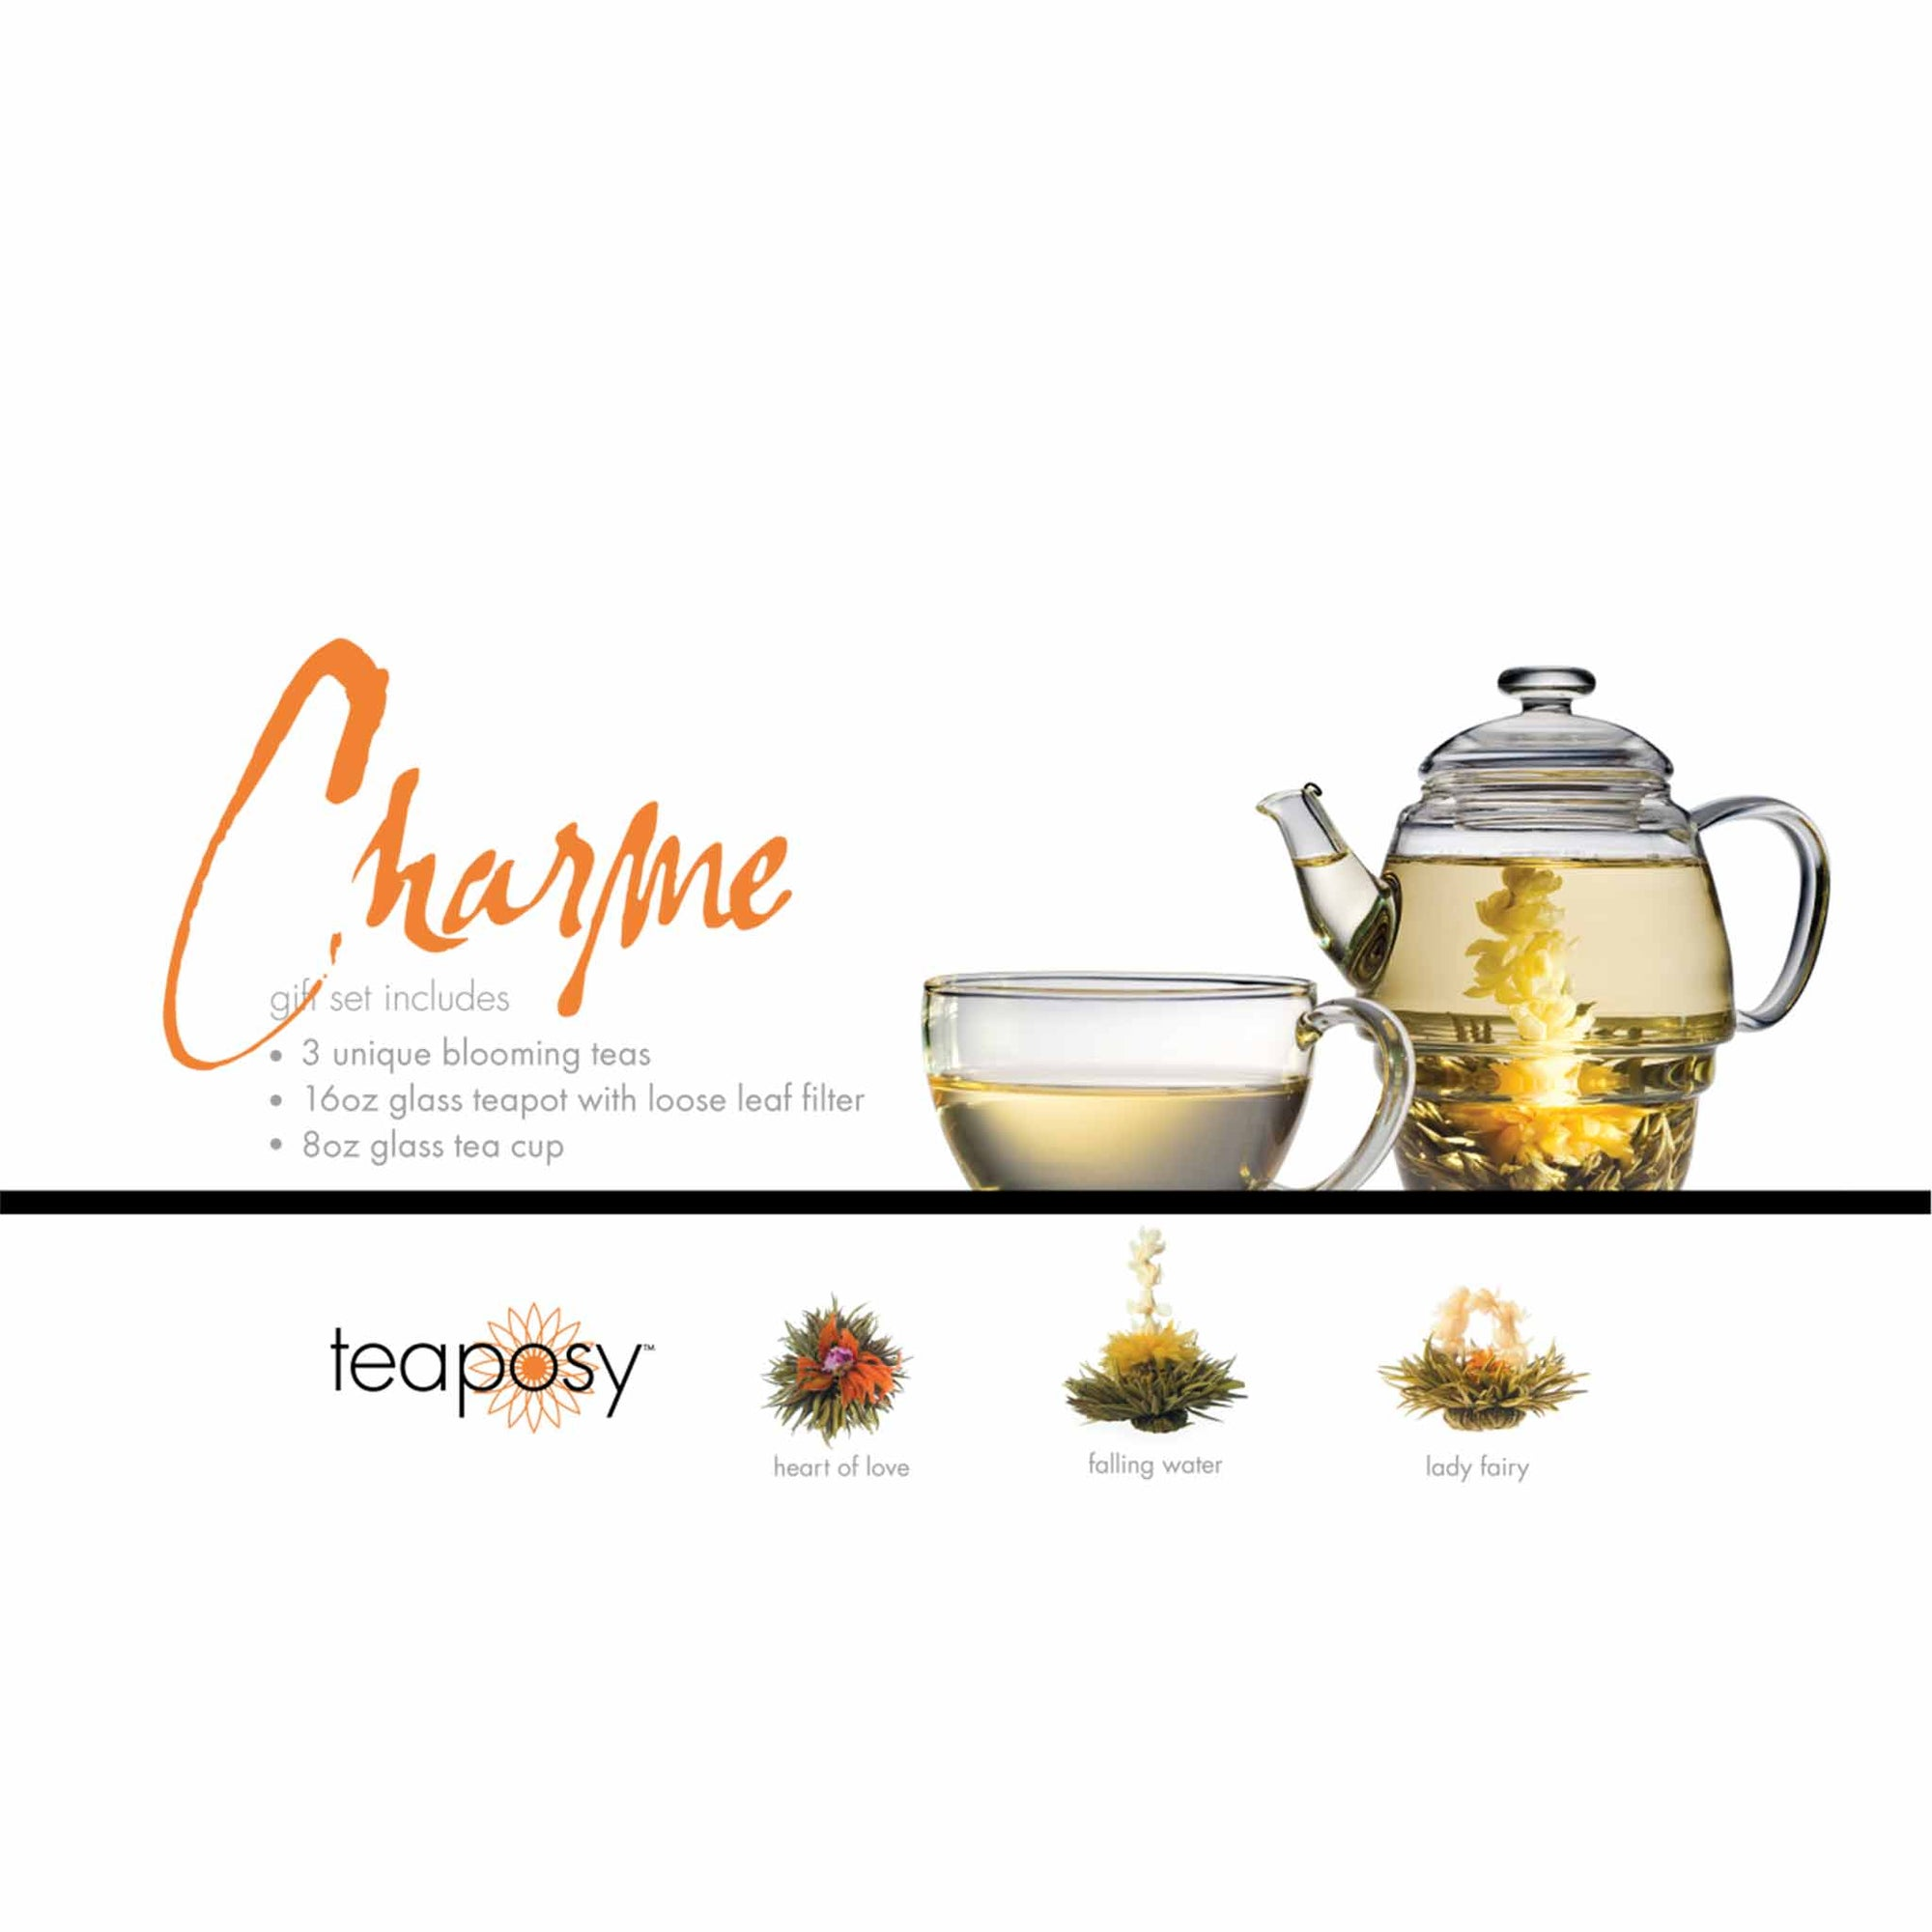 Teaposy charme posy gift set with 3 unique blooming teas, a 16oz glass teapot and an 8oz glass tea cup